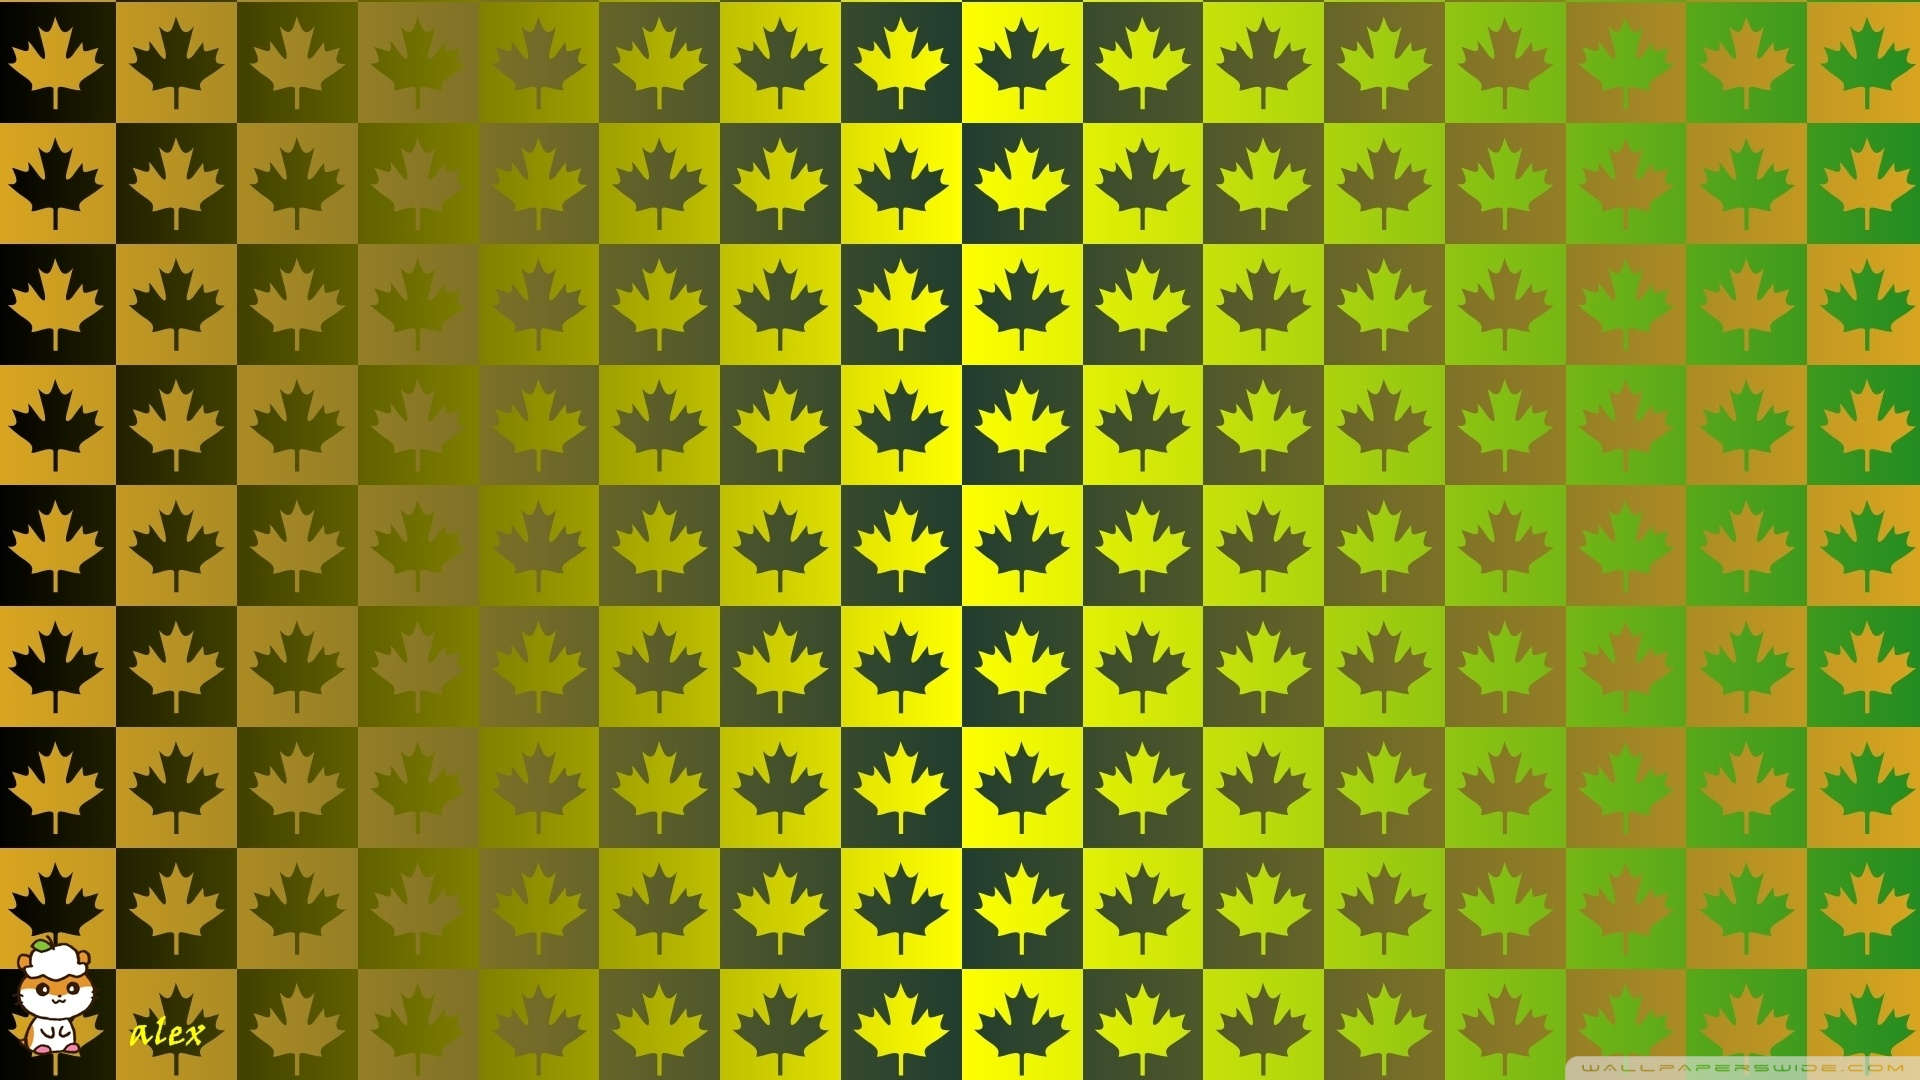 wallpaper pattern flag canada patterns images 1920x1080 1920x1080